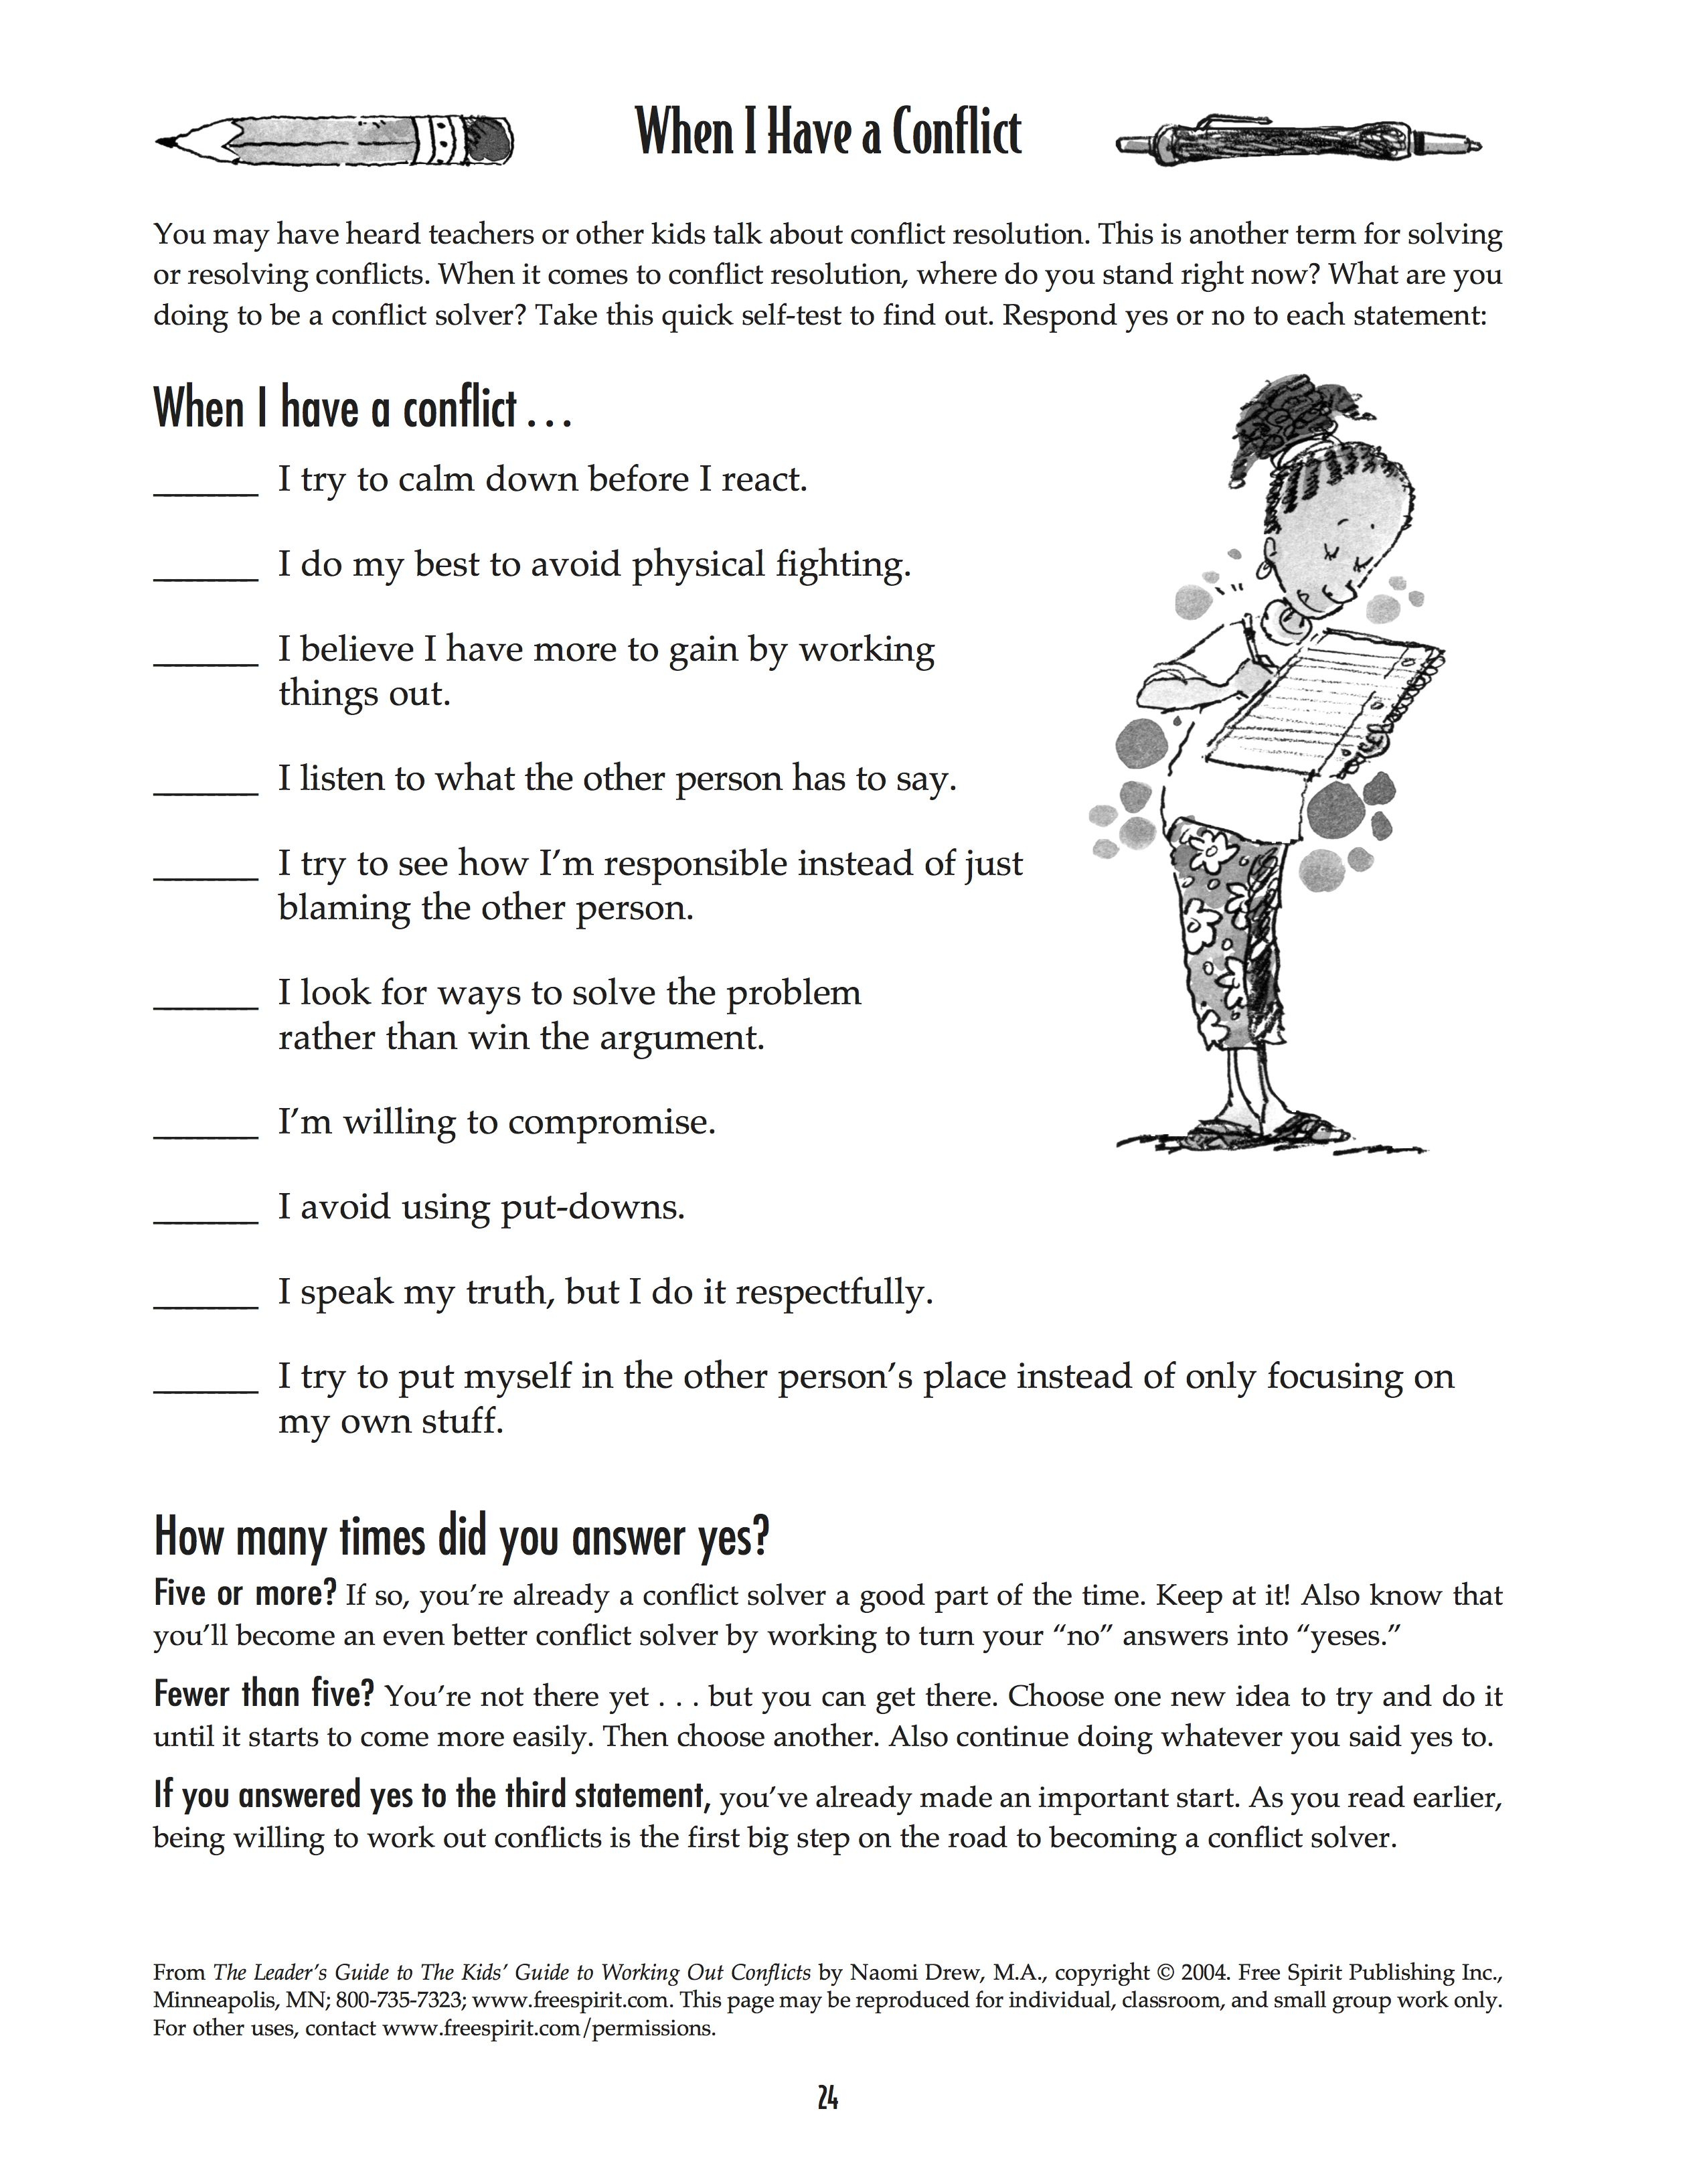 Free Printable Worksheet: When I Have A Conflict. A Quick Self-Test | Free Printable Worksheets For Elementary Students